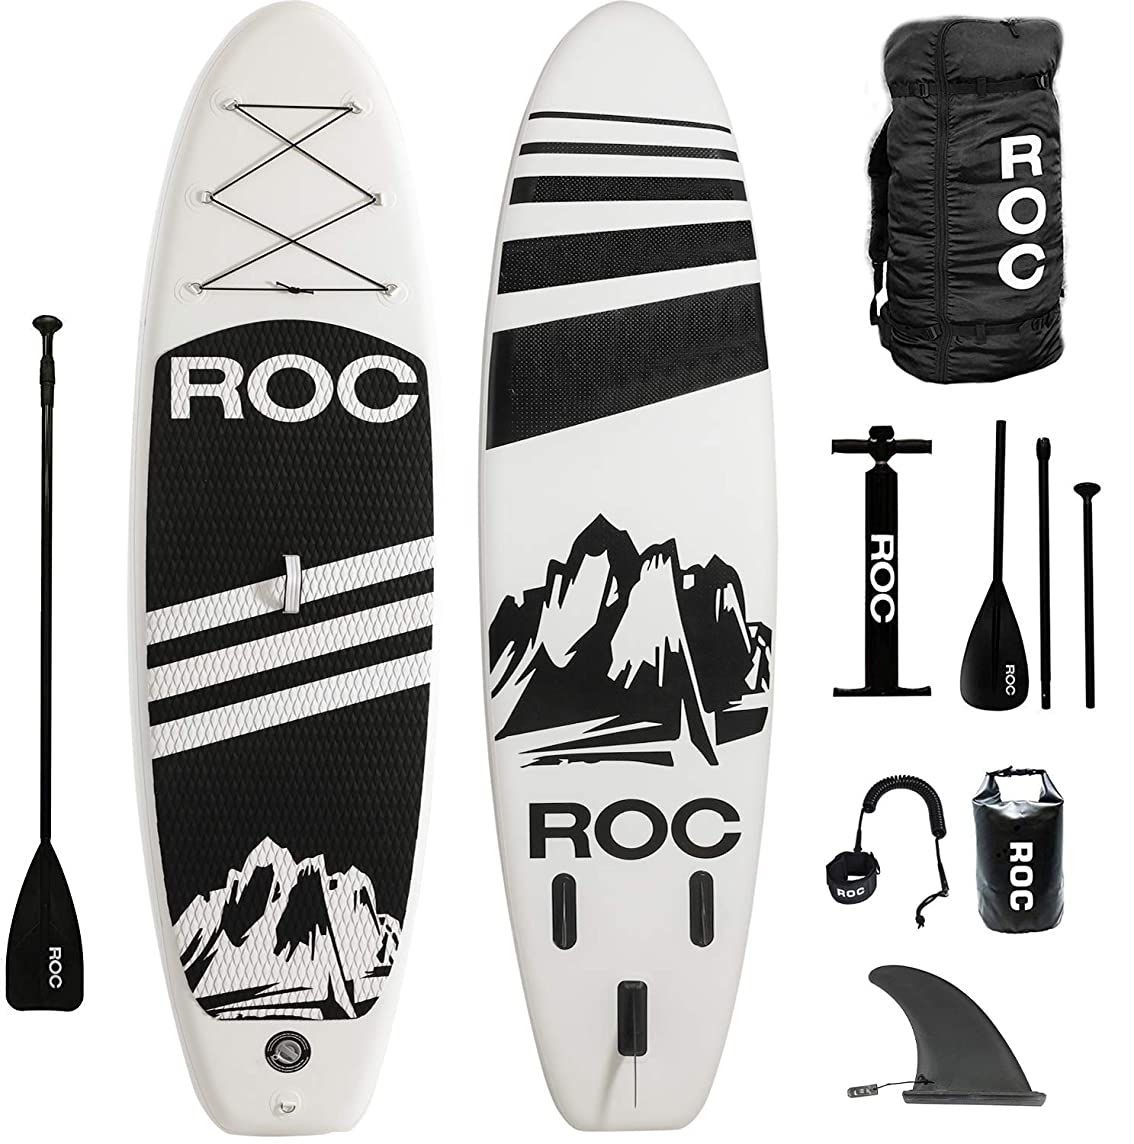 Roc Inflatable Stand Up Paddle Boards W Free Premium SUP Accessories & Backpack { Non-Slip Deck } Bonus Waterproof Bag, Leash, Paddle and Hand Pump !!! Youth & Adult